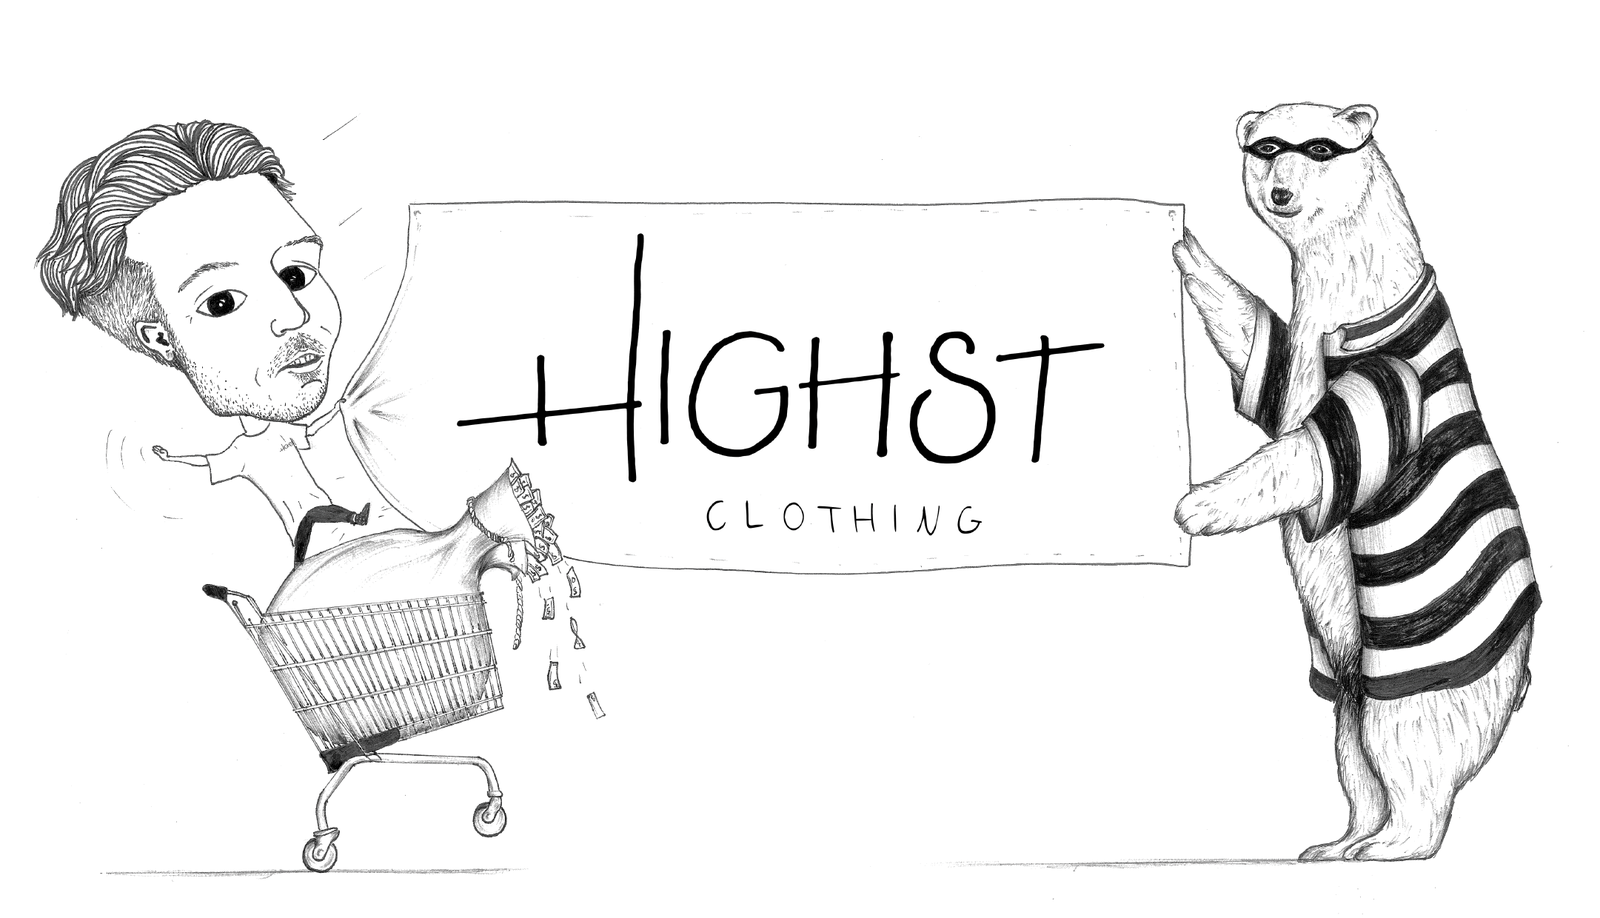 HIGHST Clothing cover